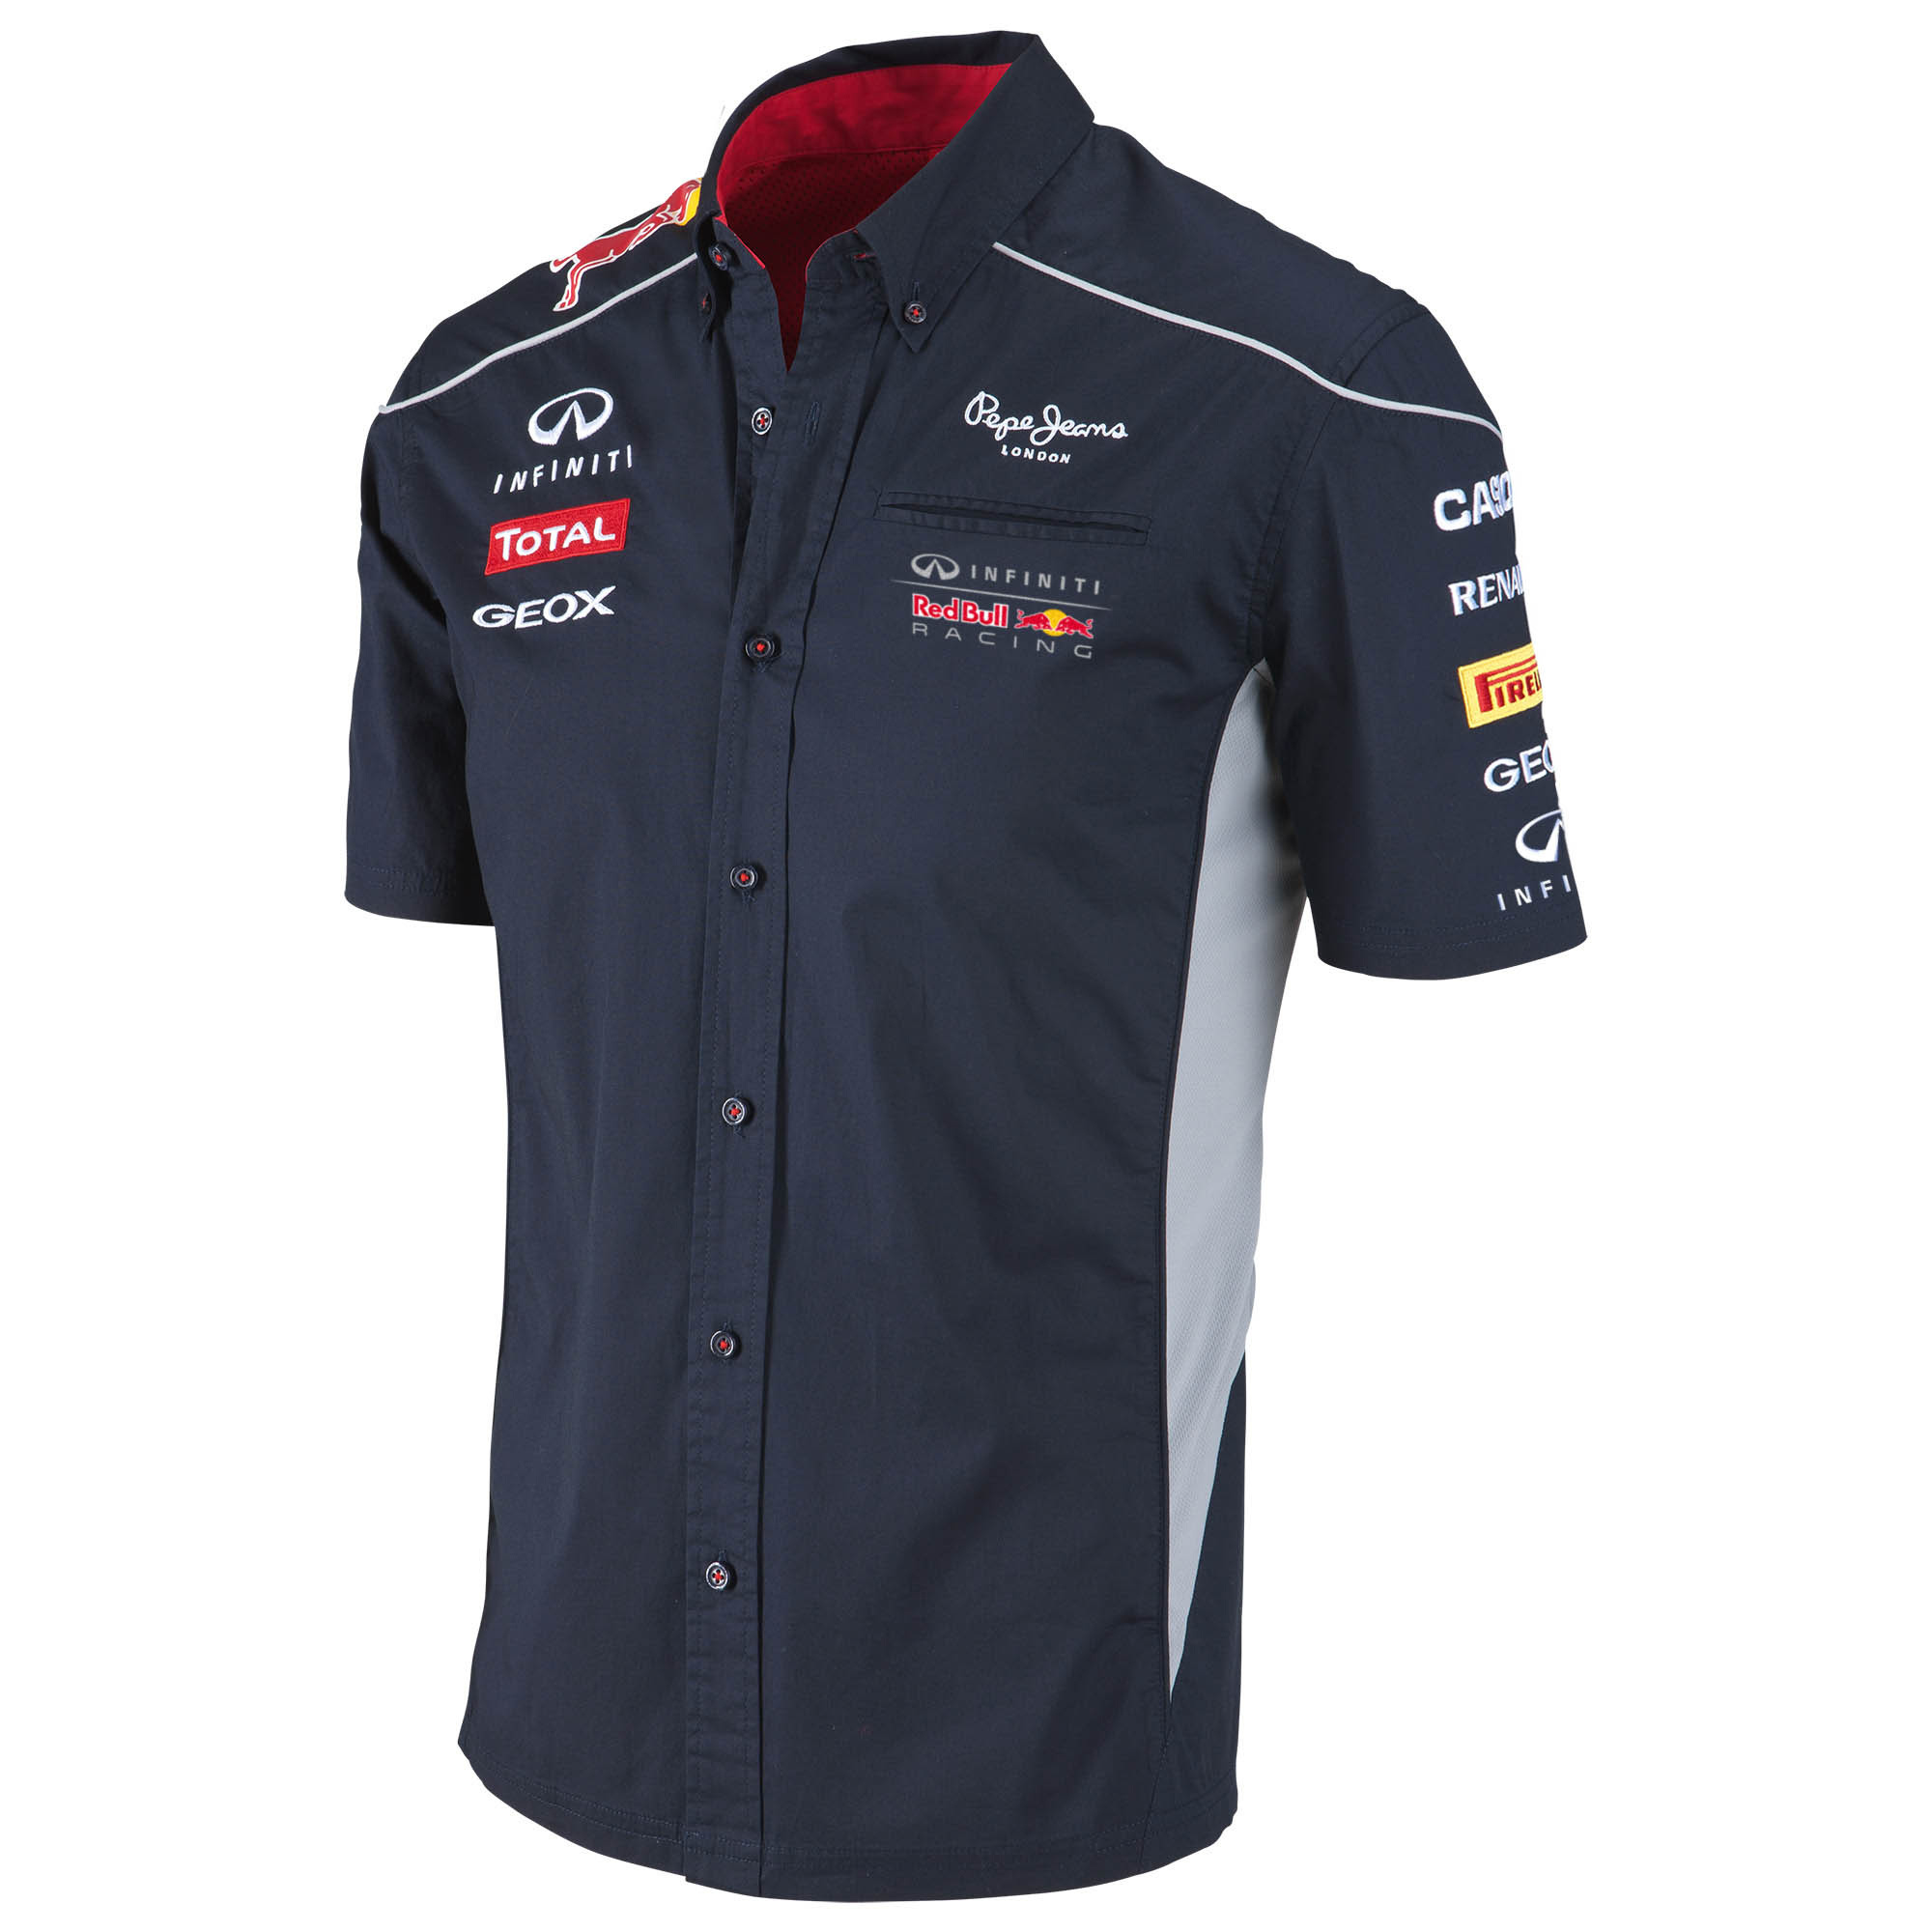 Infiniti Red Bull Racing 2013 Official Teamline Shirt